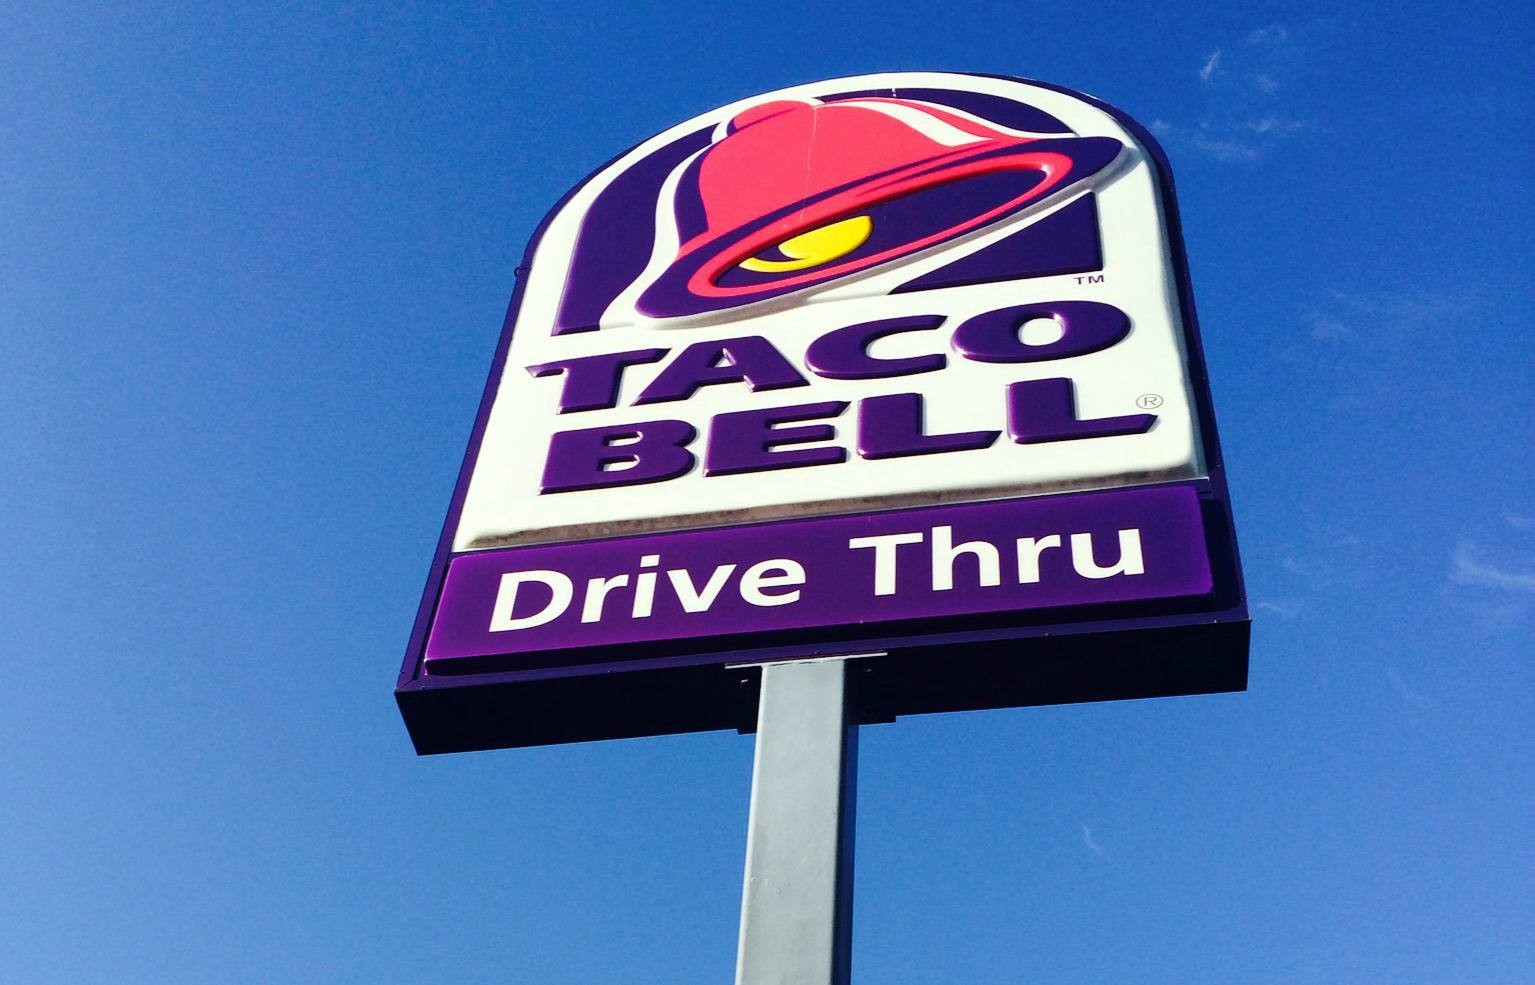 low calorie Taco Bell food